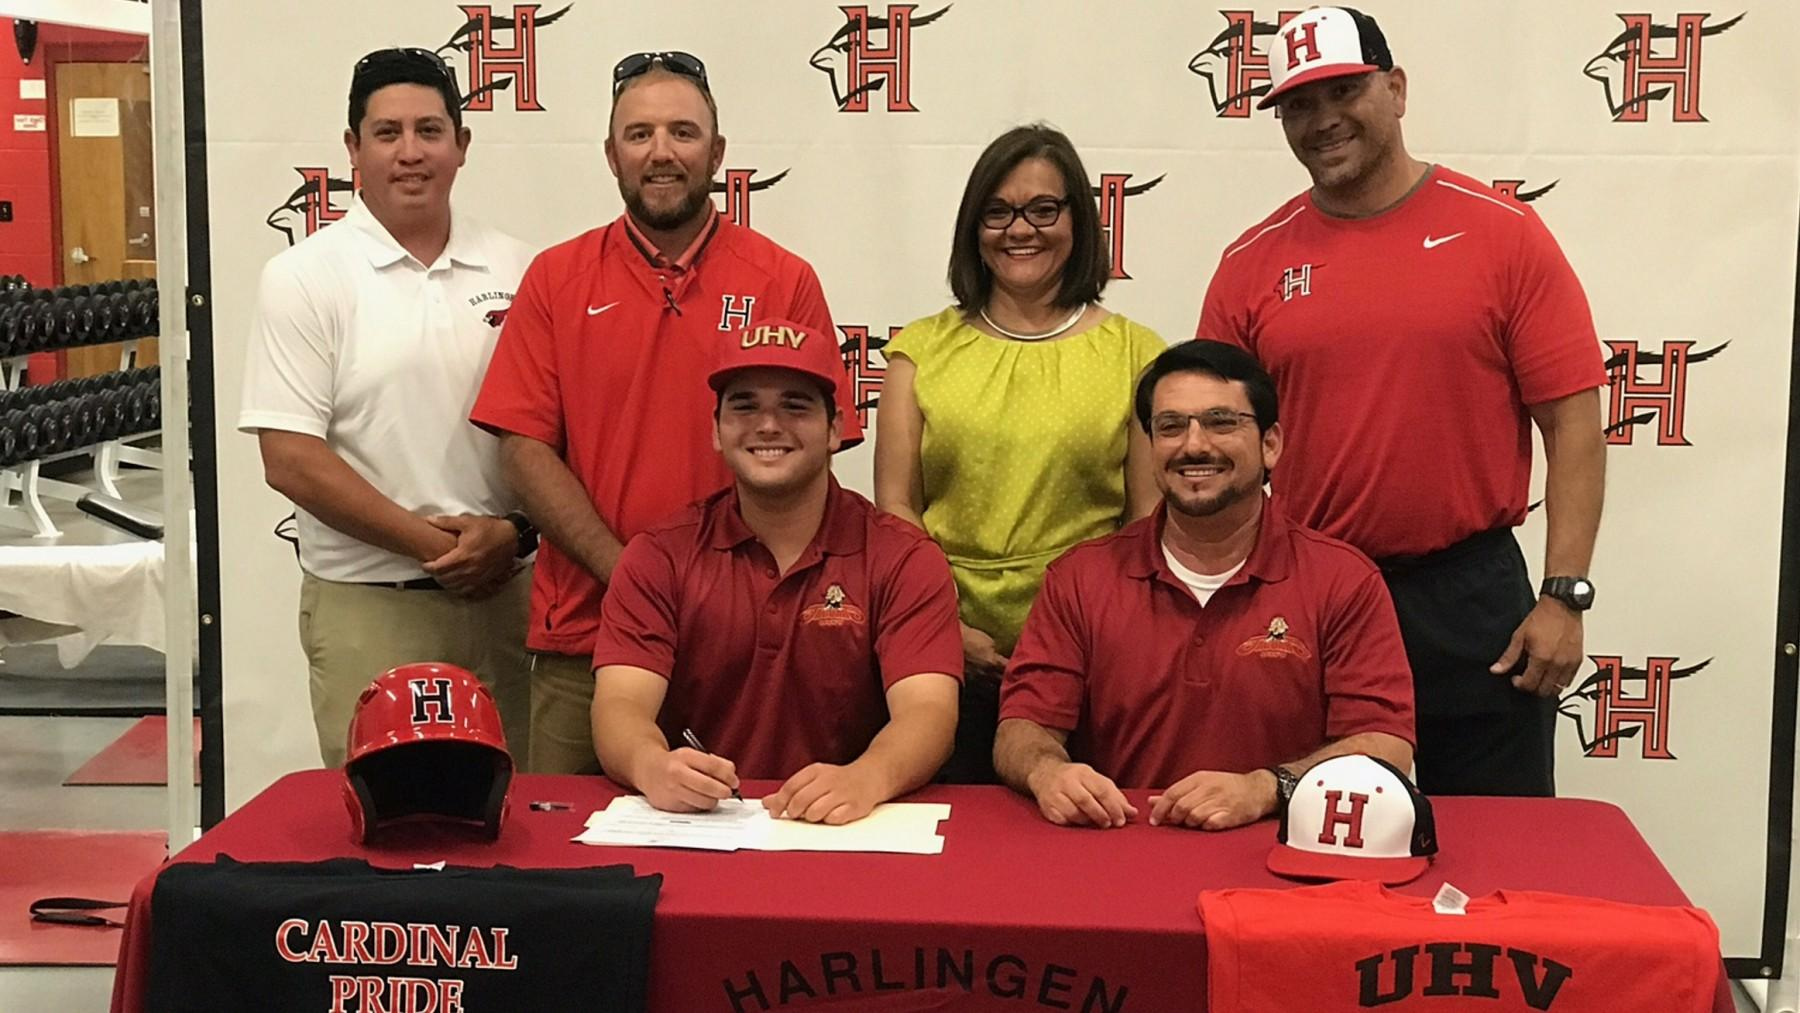 Harlingen first baseman signs with UHV